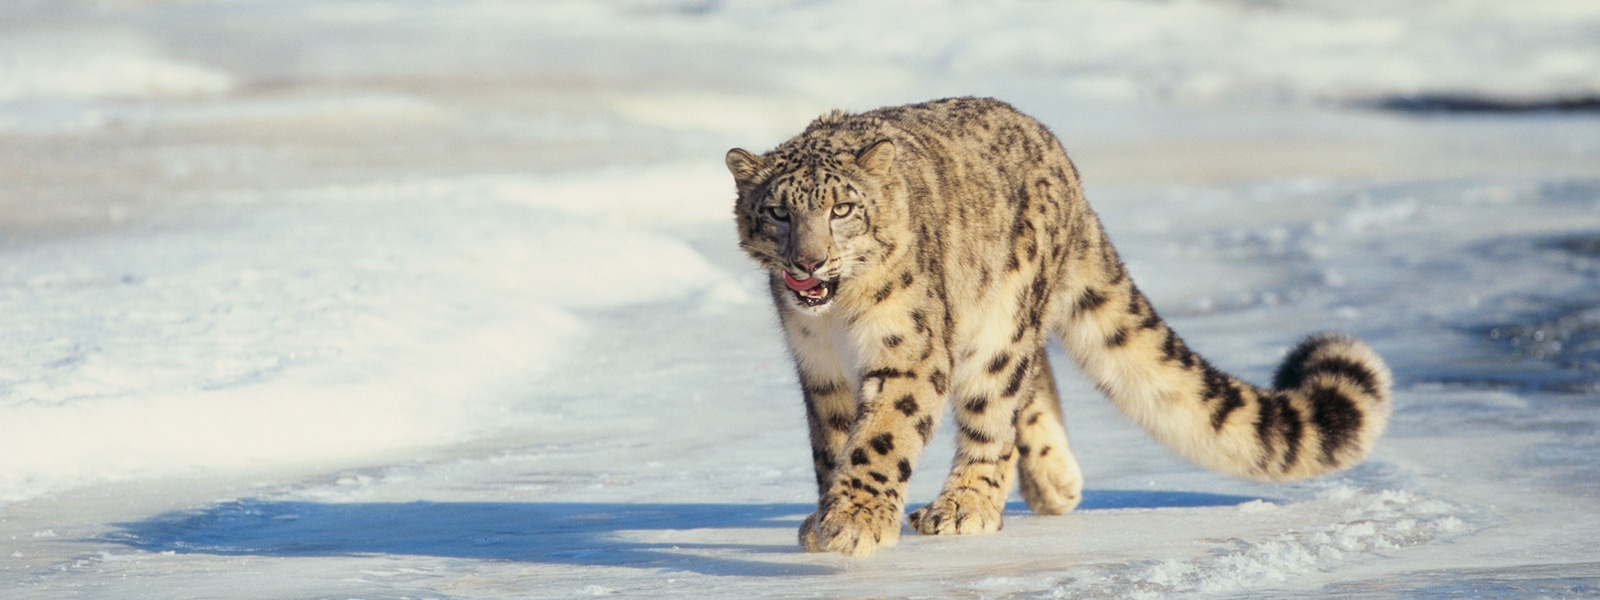 Snow leopard walks across snowy field.